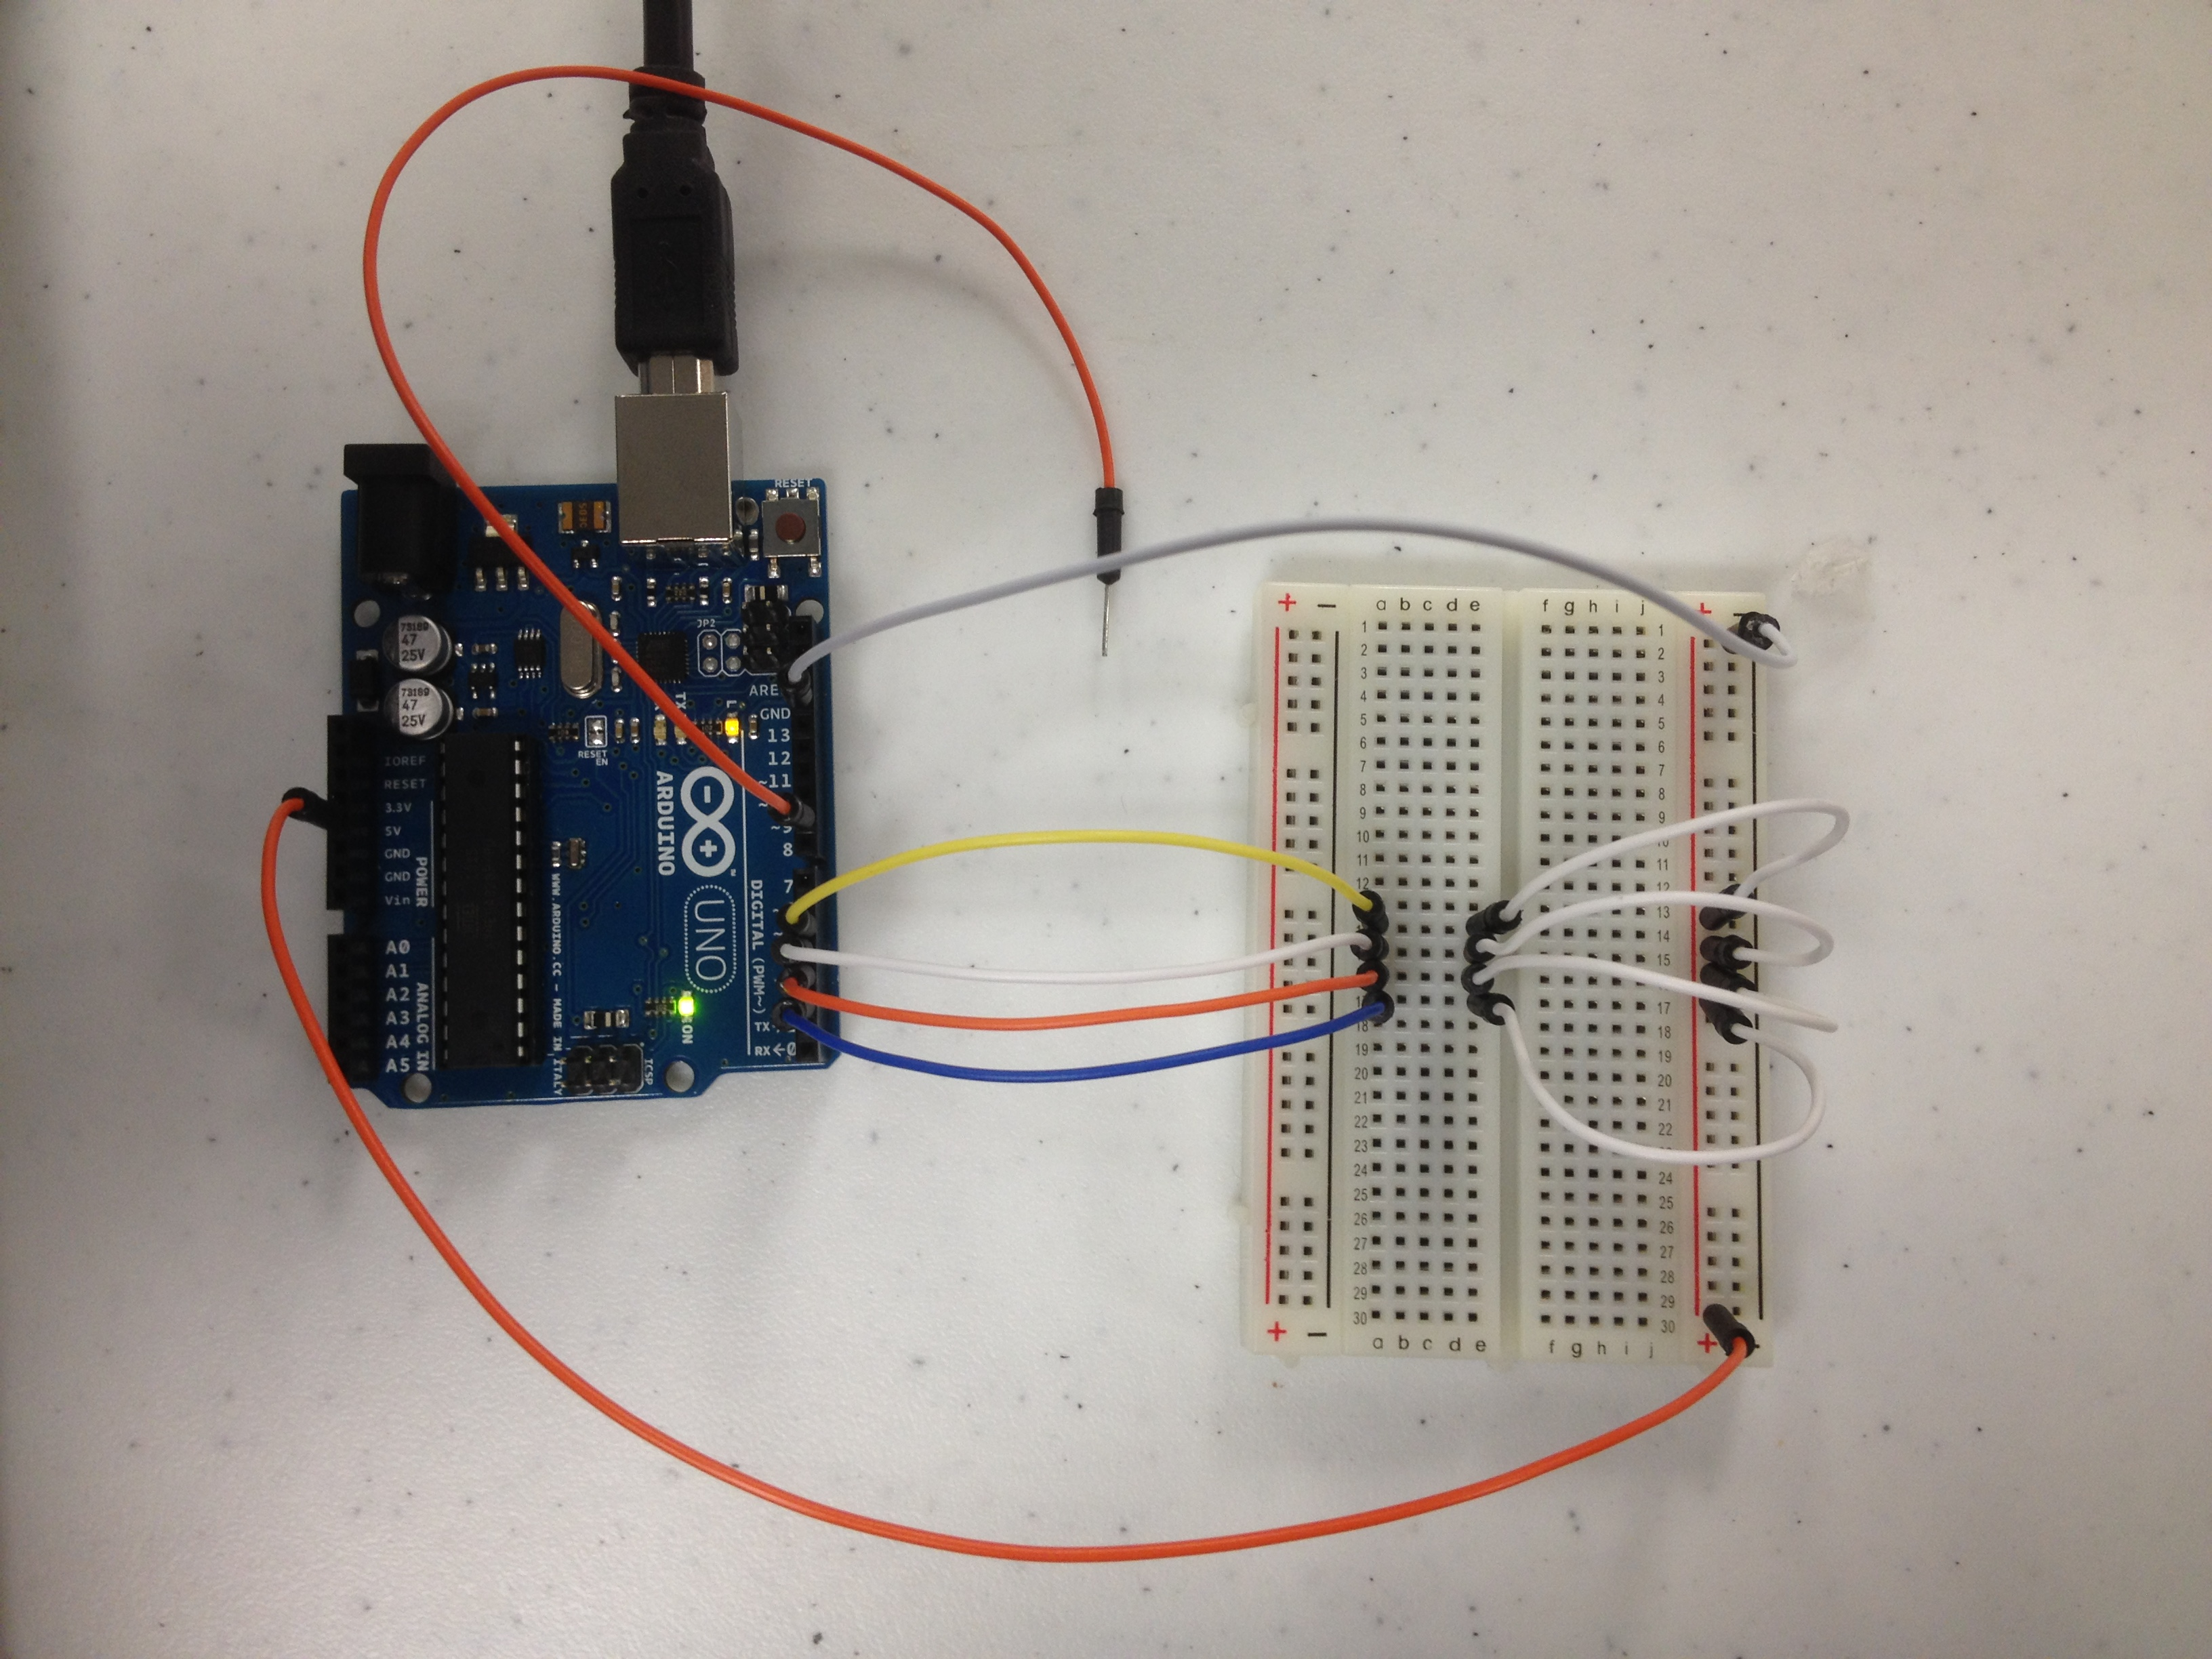 GitHub - vancemiller/Arduino-AM-transmitter: An AM transmitter for ...